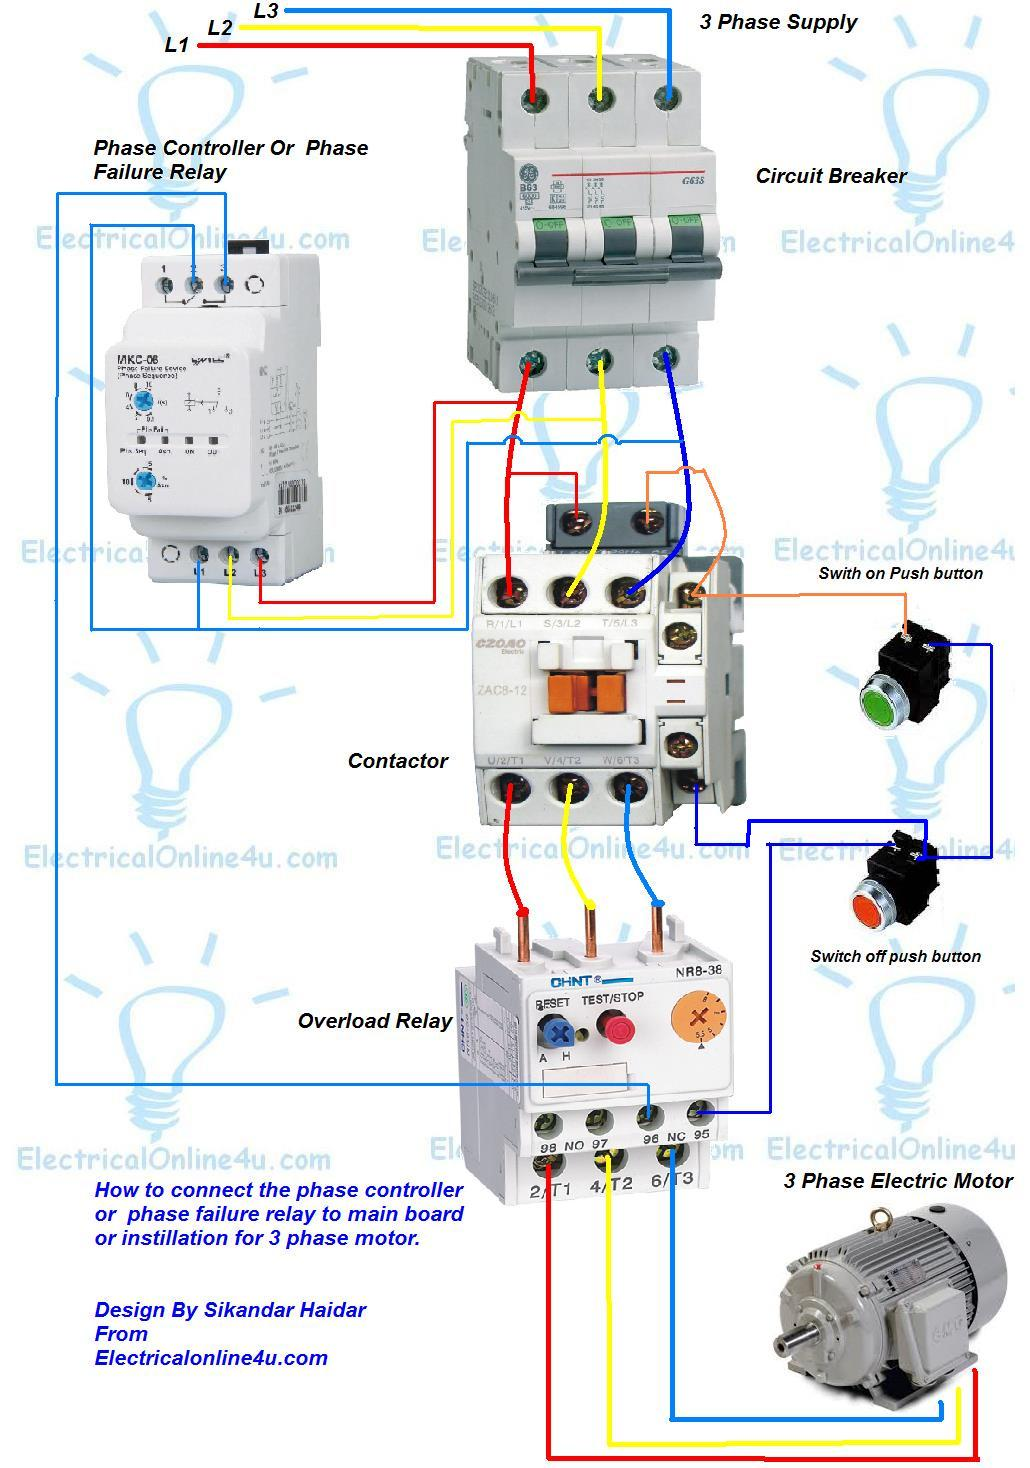 Phase%2Bfailure%2Brelay%2B %2Bphase%2Bcontroller%2Binstilaion%2Bin%2B3%2Bphase%2BMain%2Bboard%2Bor%2Bfor%2B3%2Bphase%2Bmotor phase controller wiring phase failure relay diagram electrical 3 phase motor starter wiring diagram at gsmportal.co